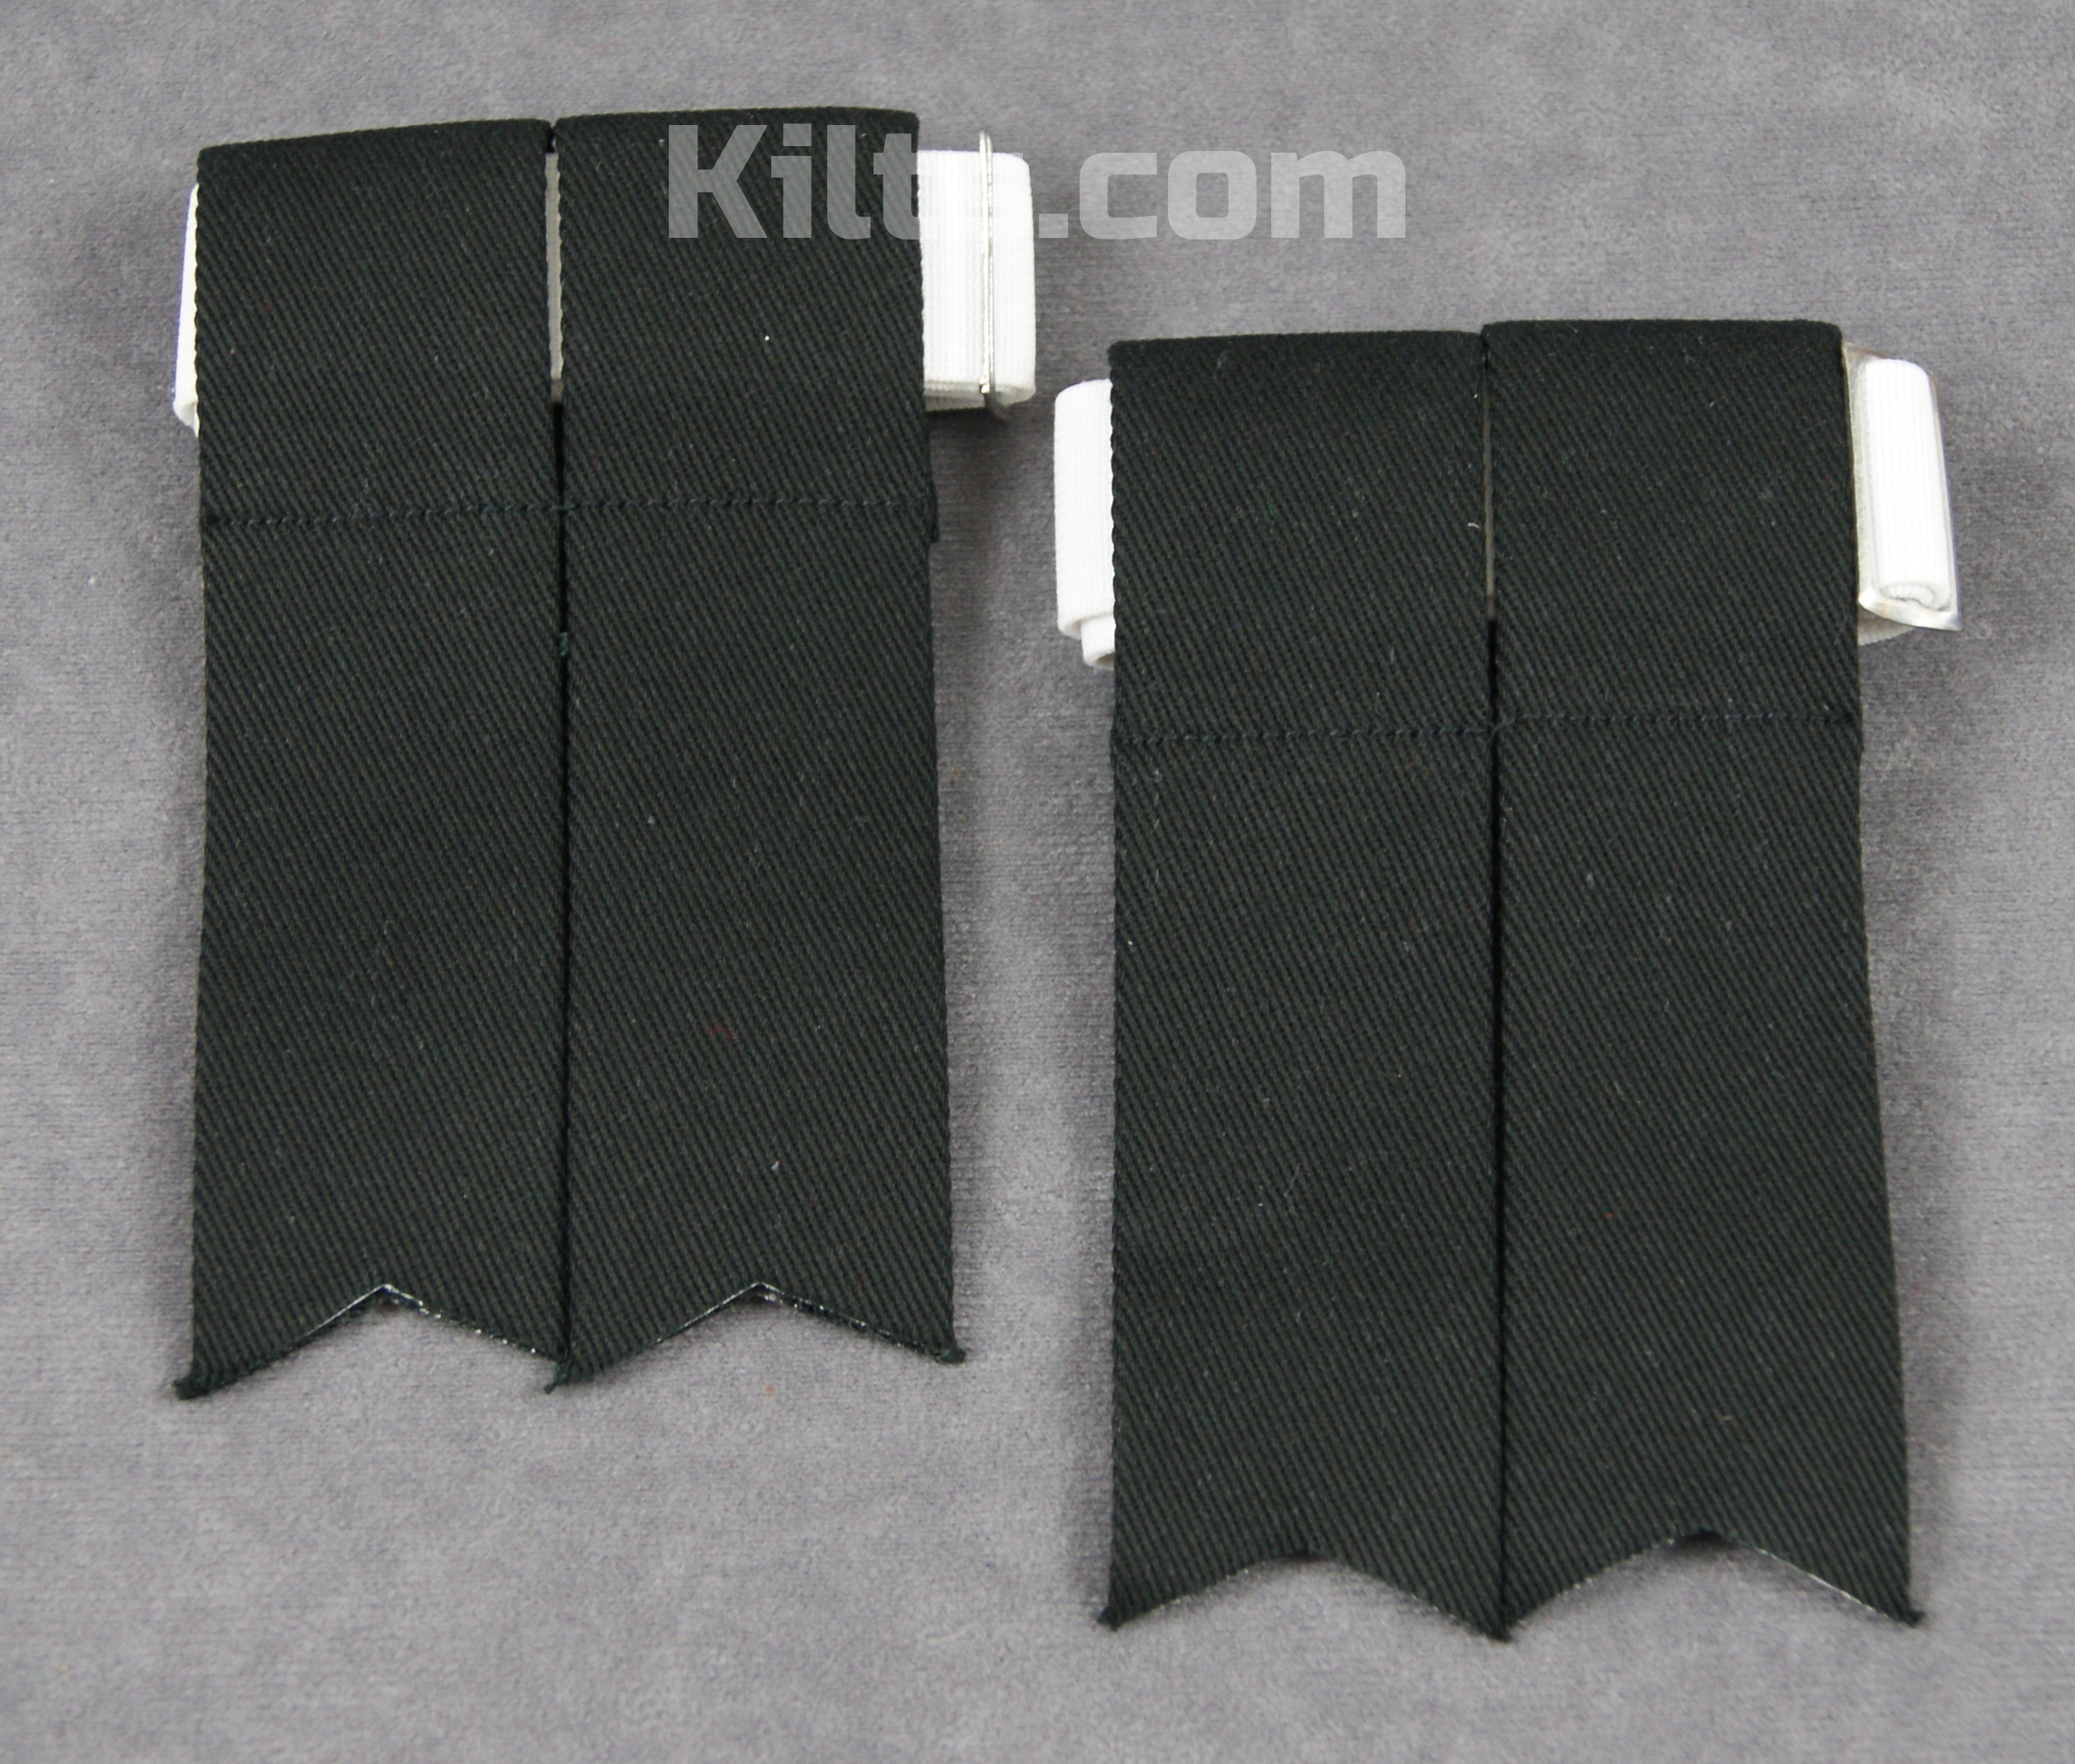 Check out our Standard Kilt Sock Flashes for Sale in Black.